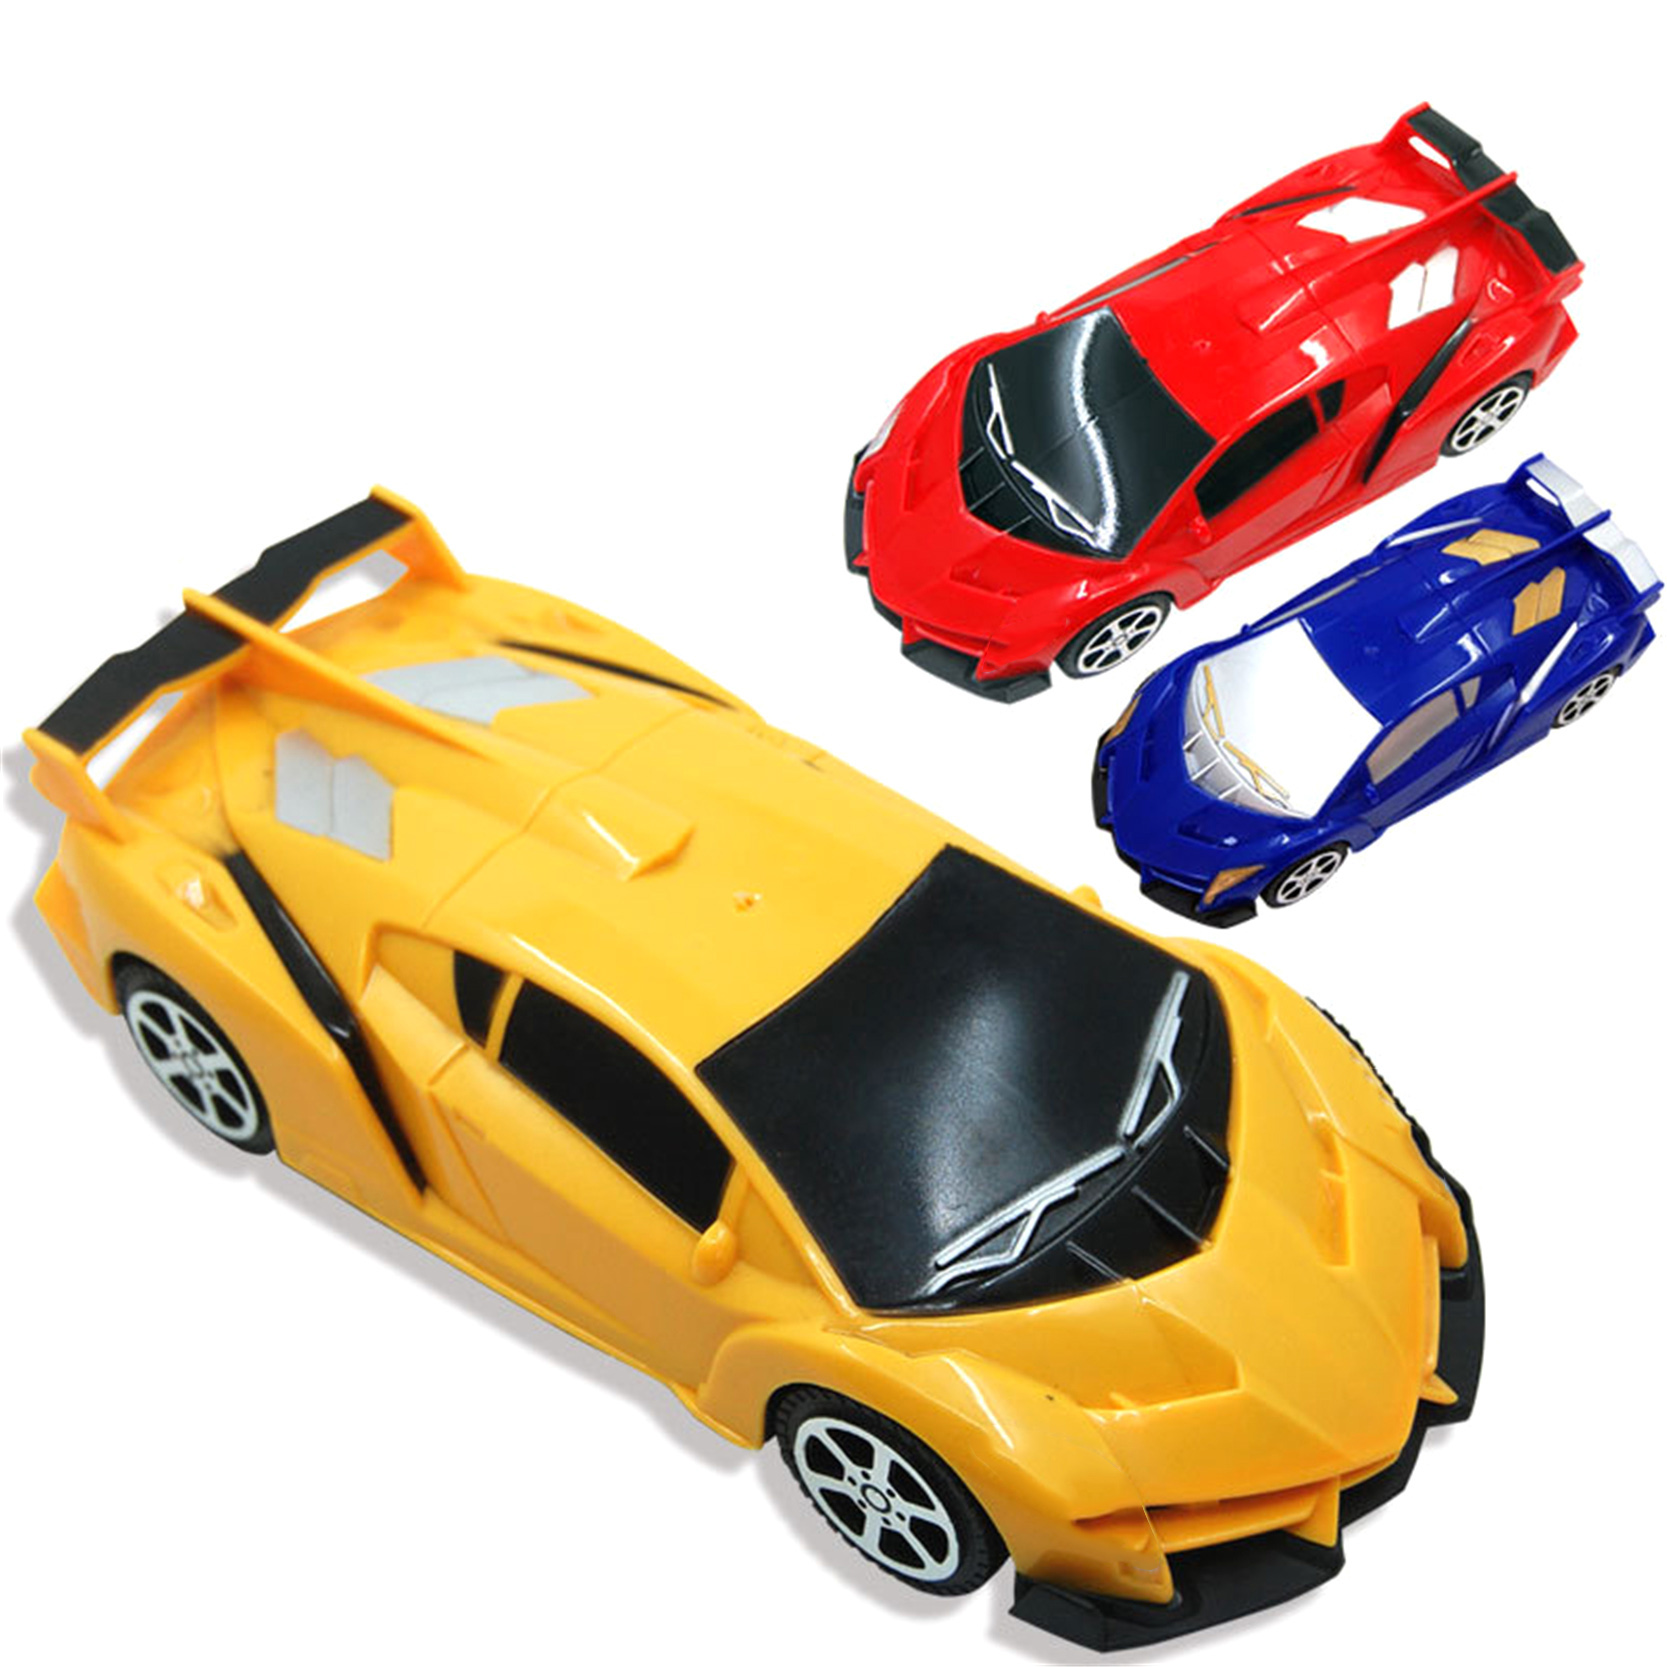 1 Pcs Random Children Cute Little Toys Cars Hot Wheels Pull Back Car Toy Vehicles Miniature Tools For Boys Best Gift(China (Mainland))